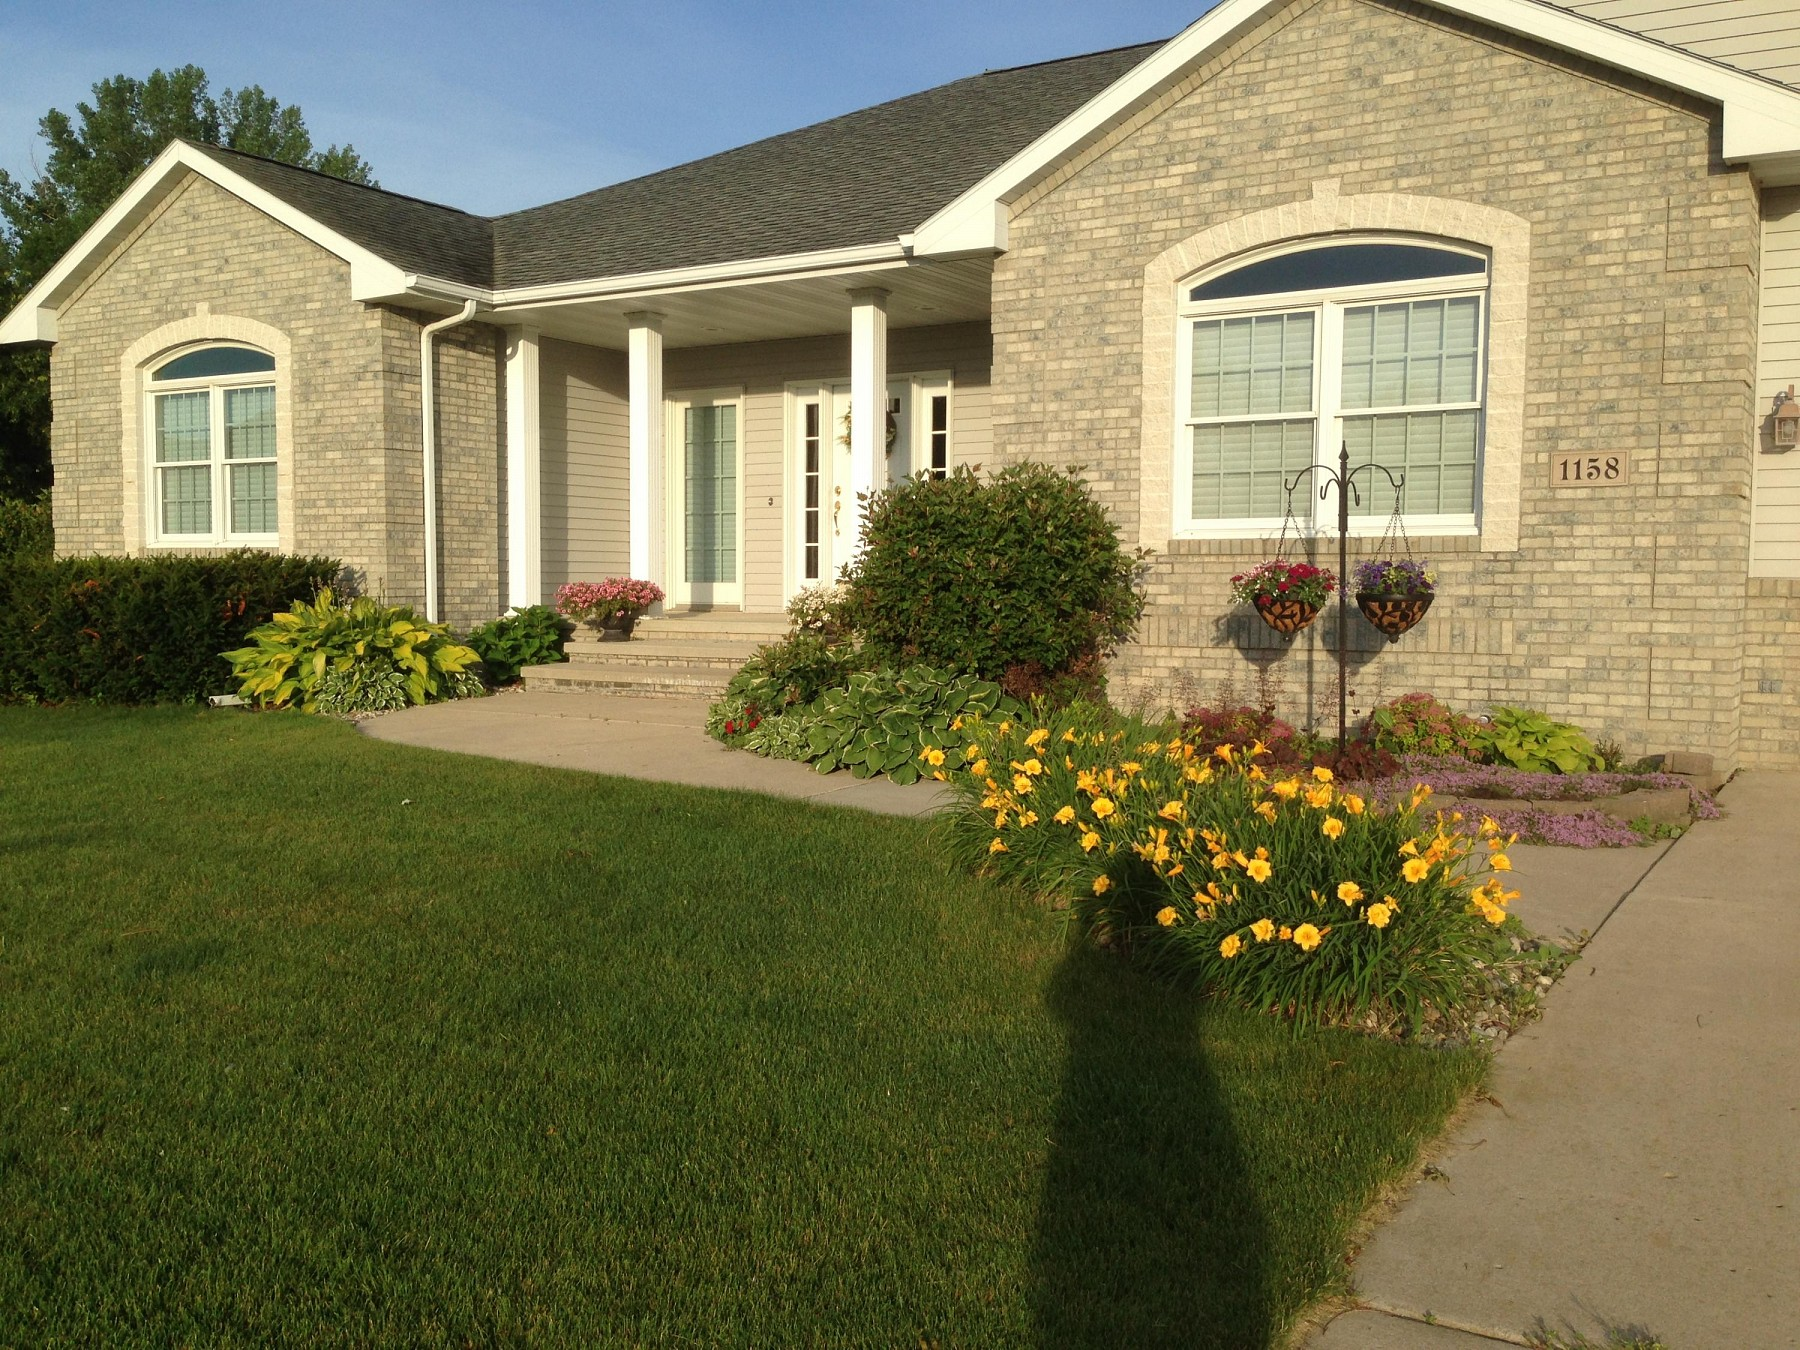 1158 Indian Hills Road, Brookings, SD 57006